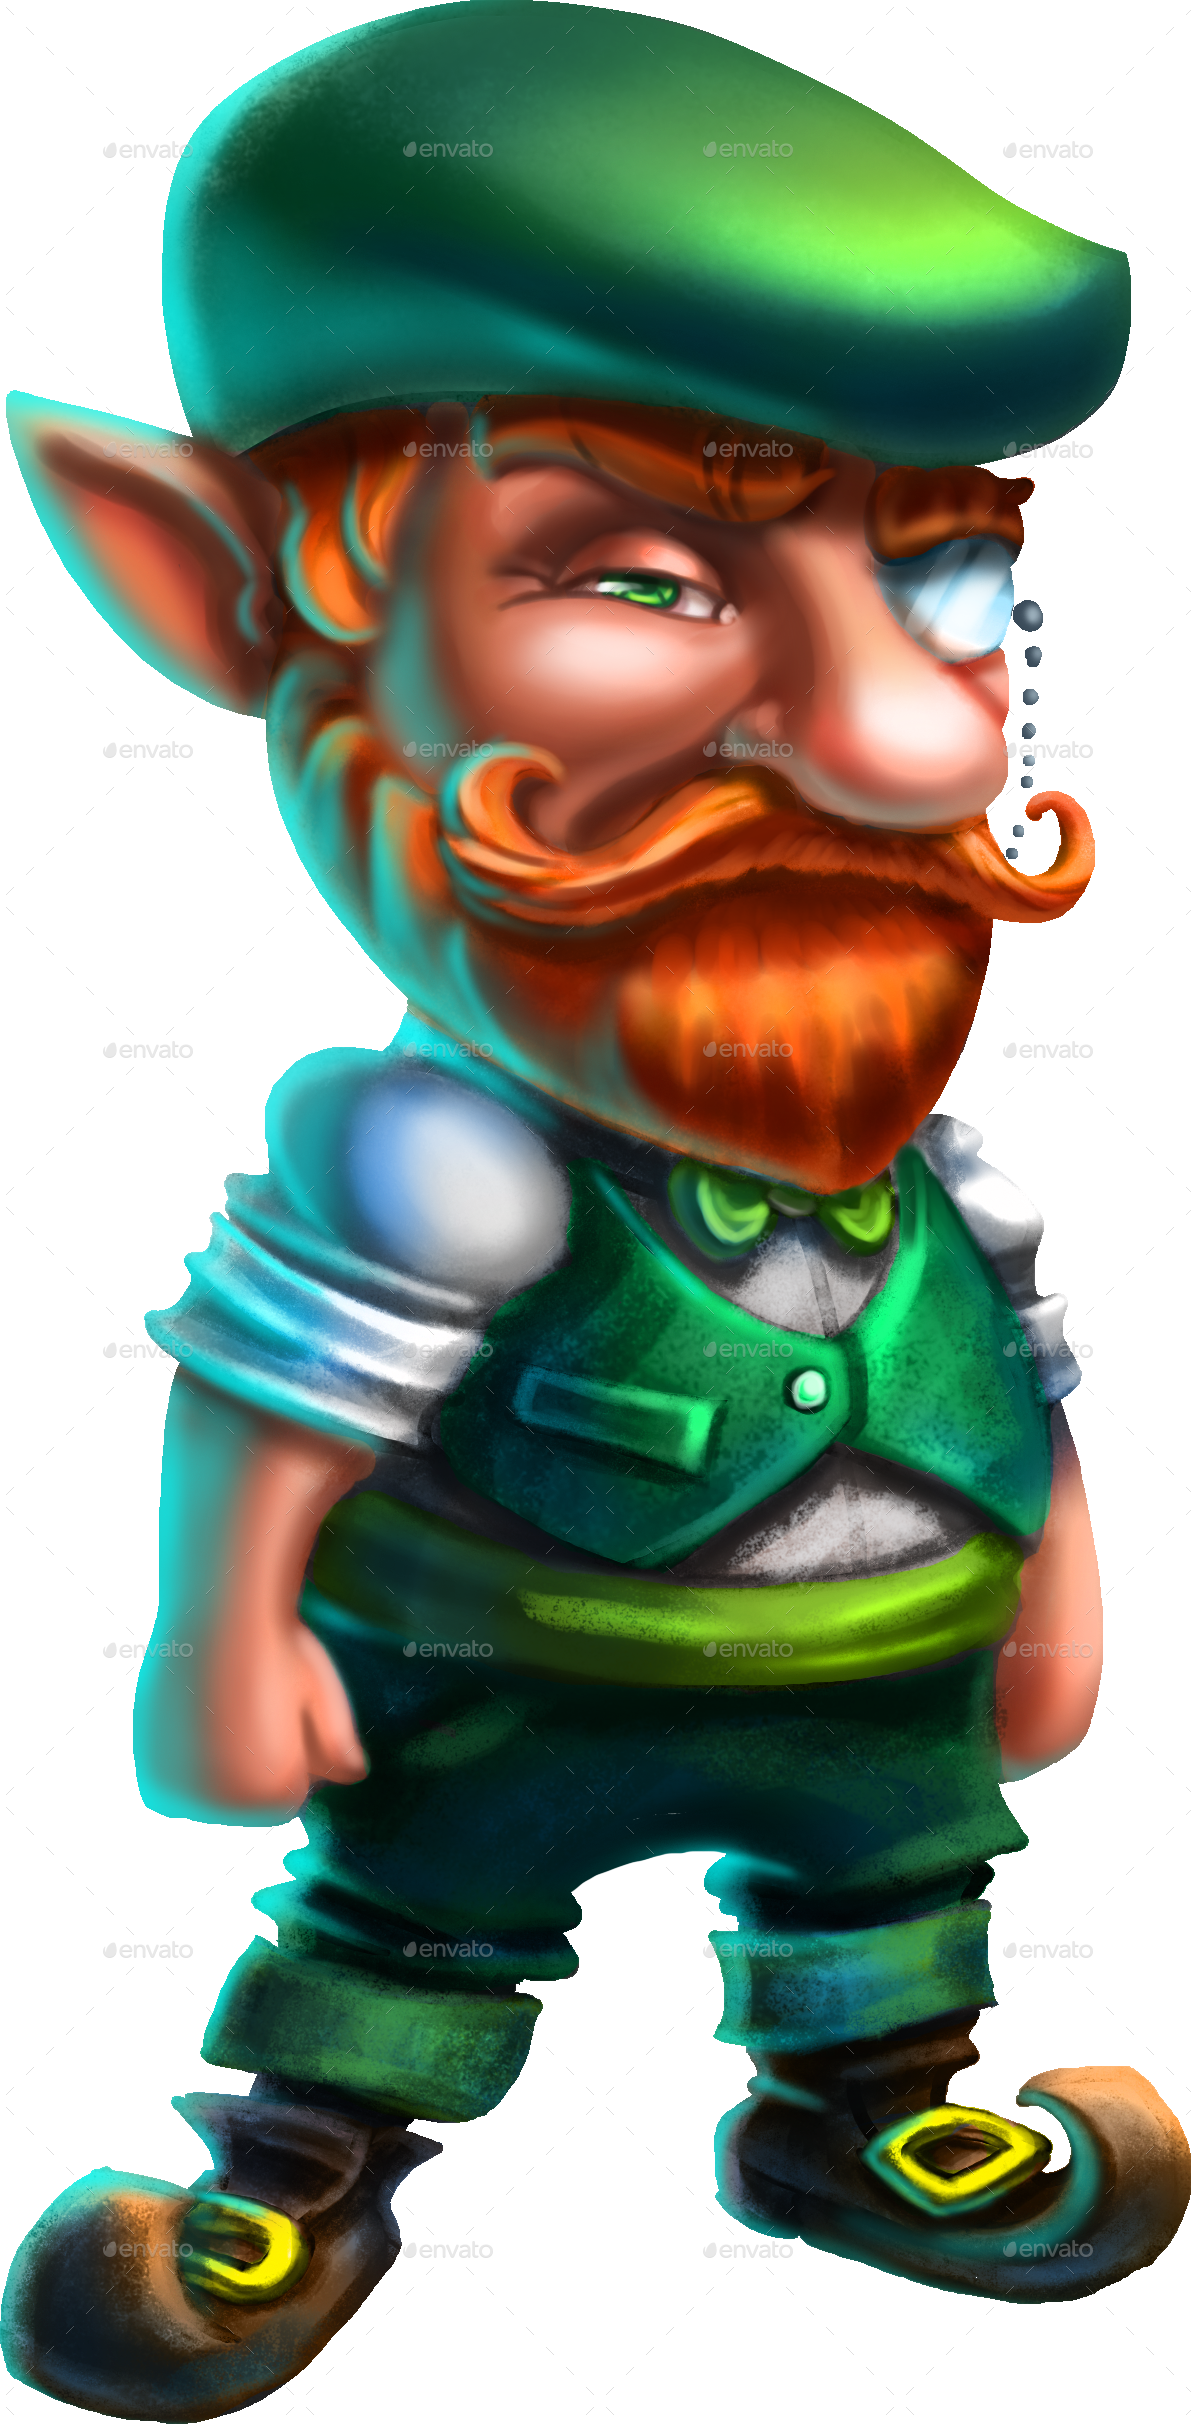 Leprechaun hipster by ennaclover graphicriver leprechaun hipster zipleprechaun stockg thecheapjerseys Images